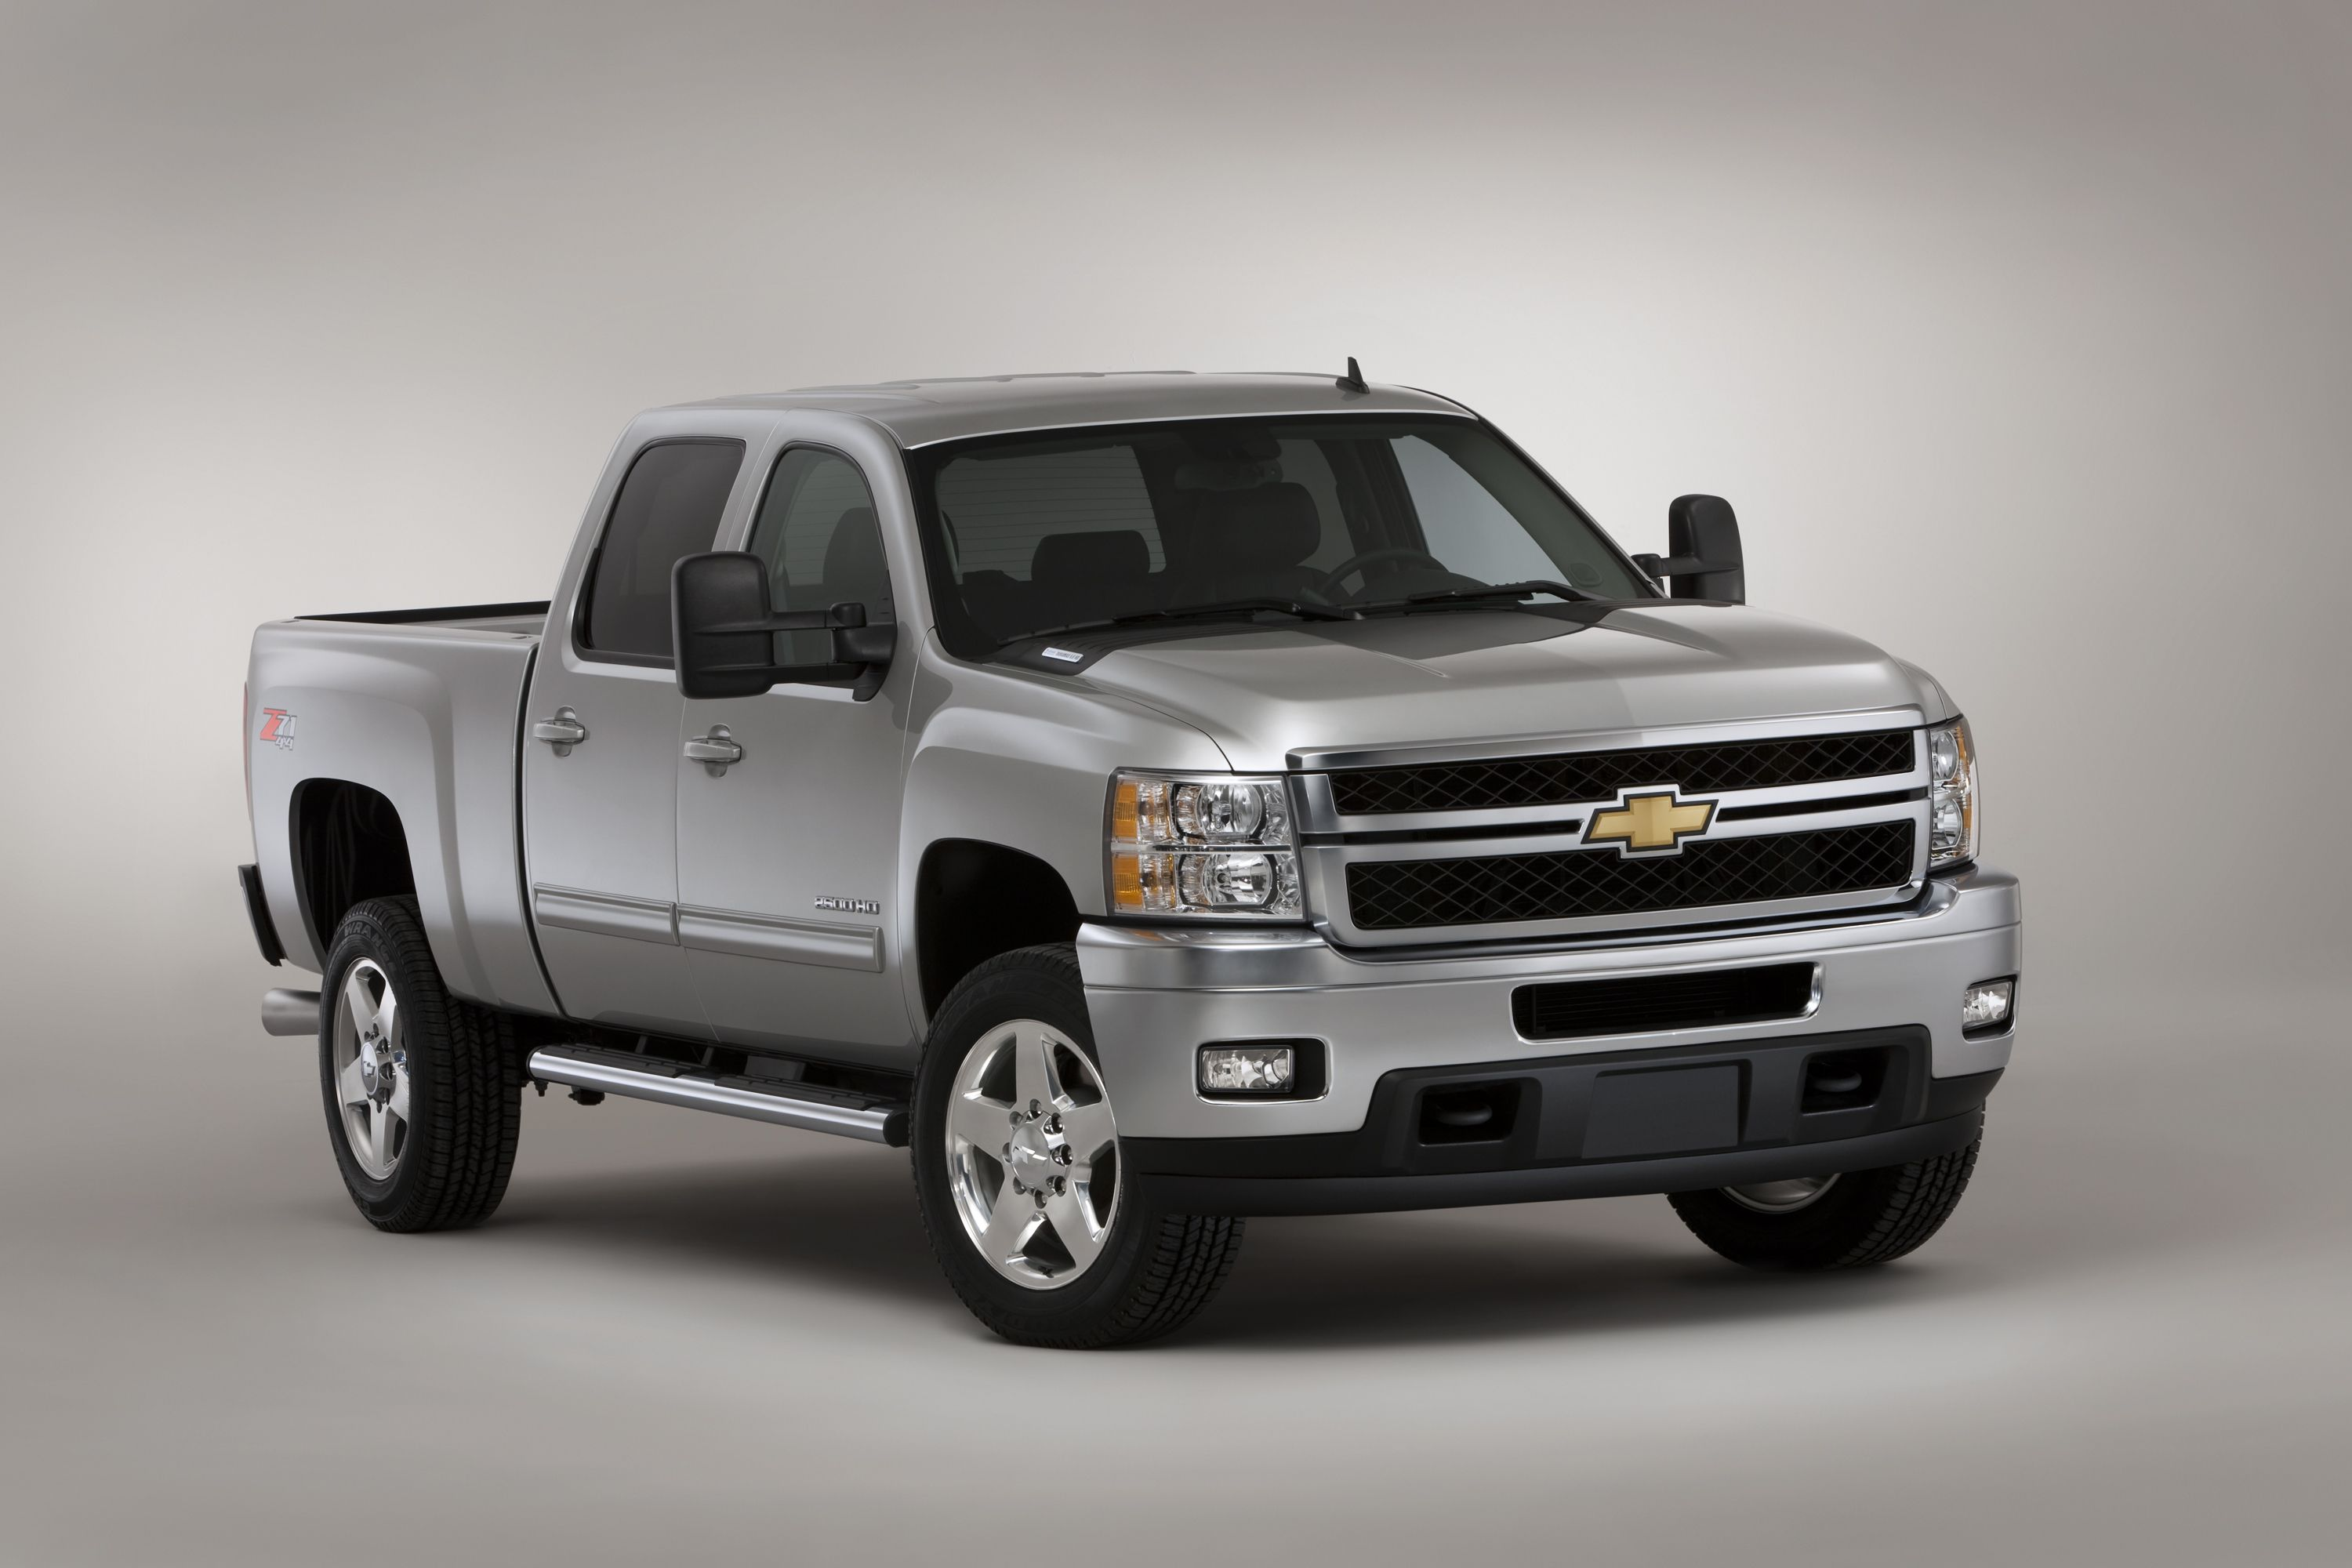 09c9f214cfa153fd26577d2456b634b1 Cool Review About 2011 Gmc 2500 Hd